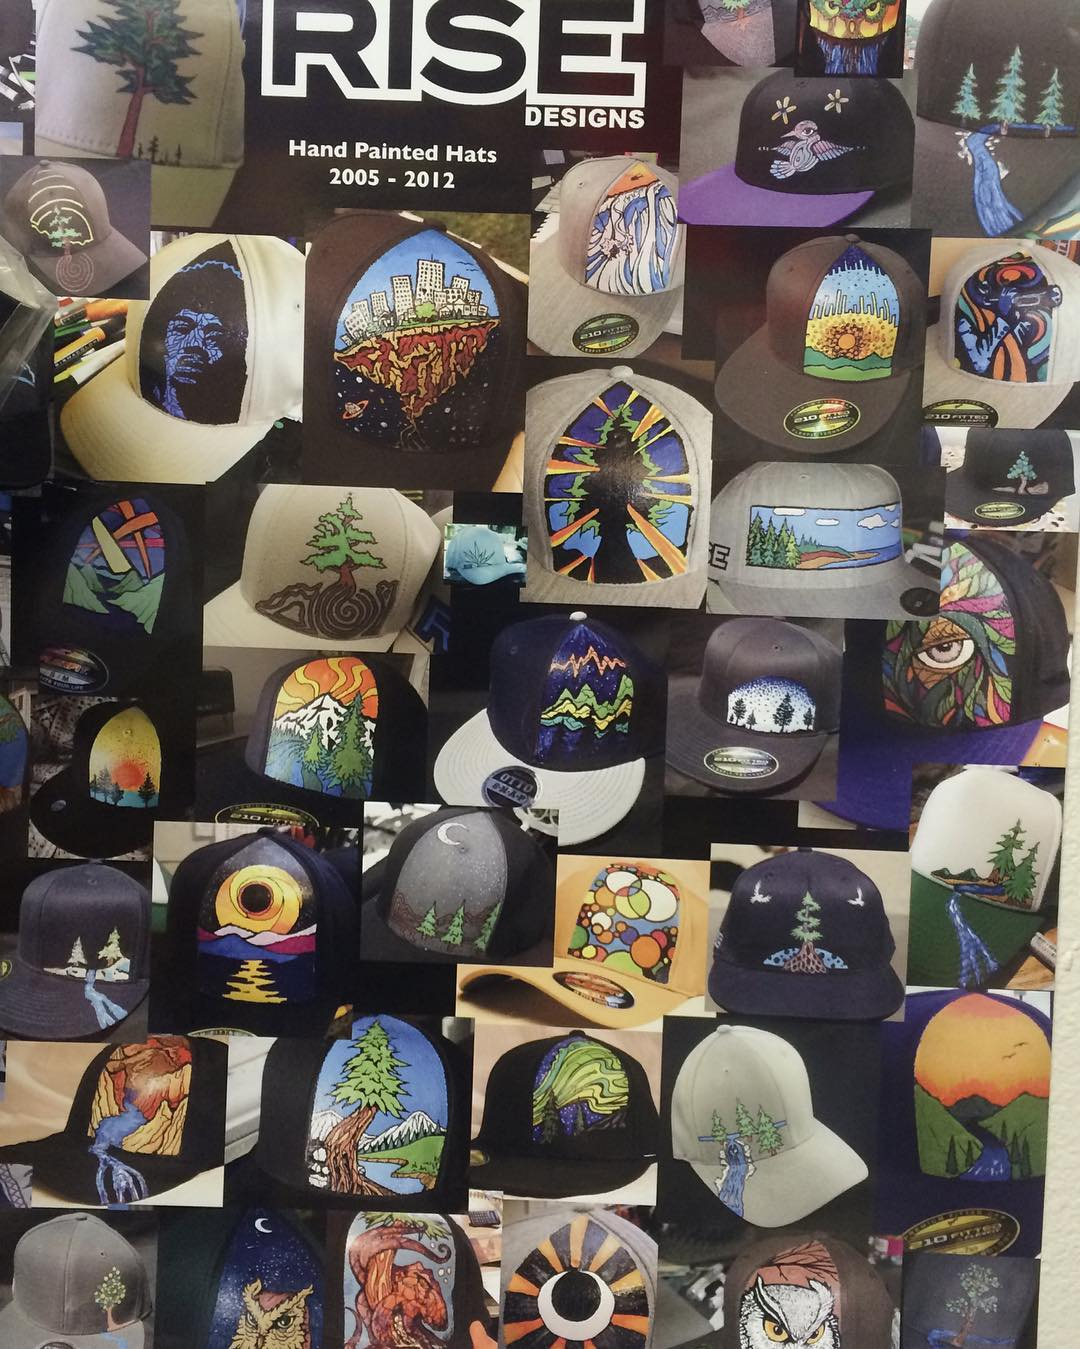 A poster of our hats we used to paint by hand one at a time. A little throwback, come take a look in our shop. #risedesigns #risedesignstahoe #riseshop #hats #poster #inspiredbynature